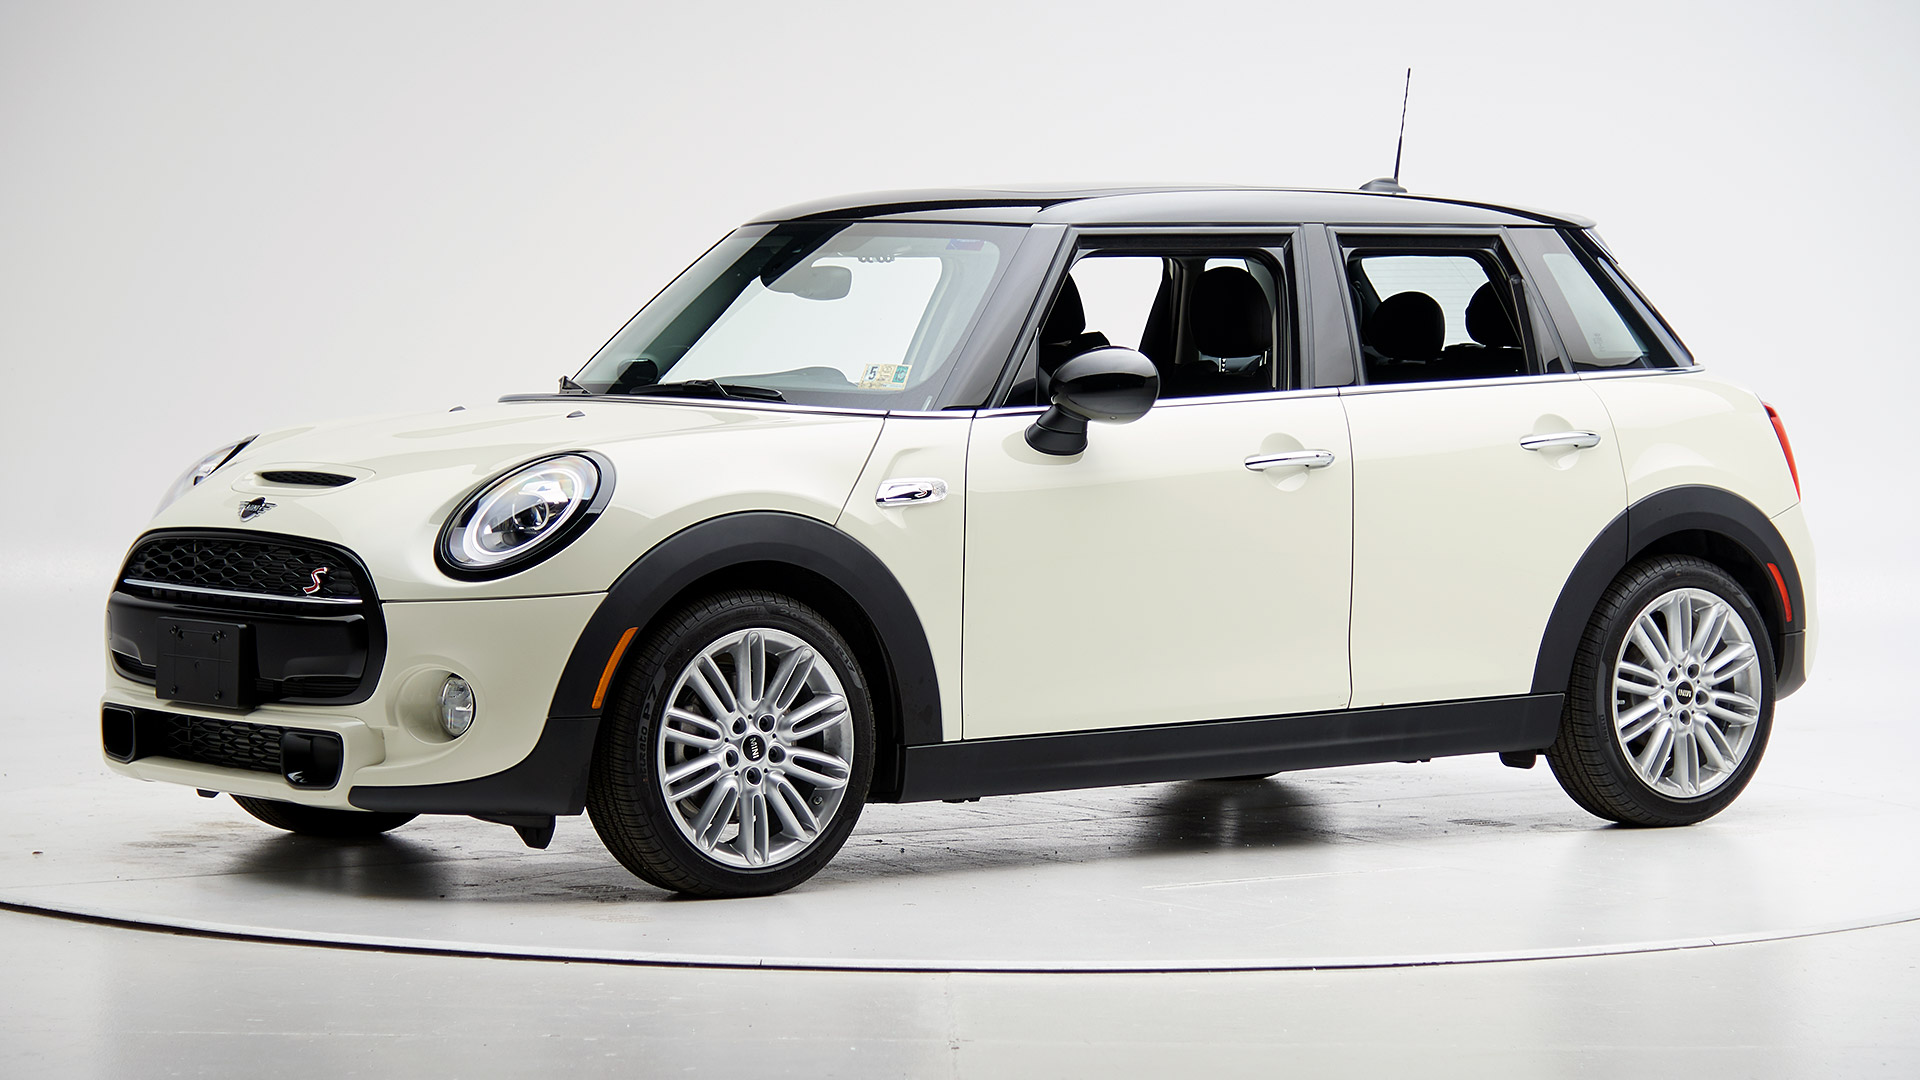 2021 Mini Cooper 4-door hatchback